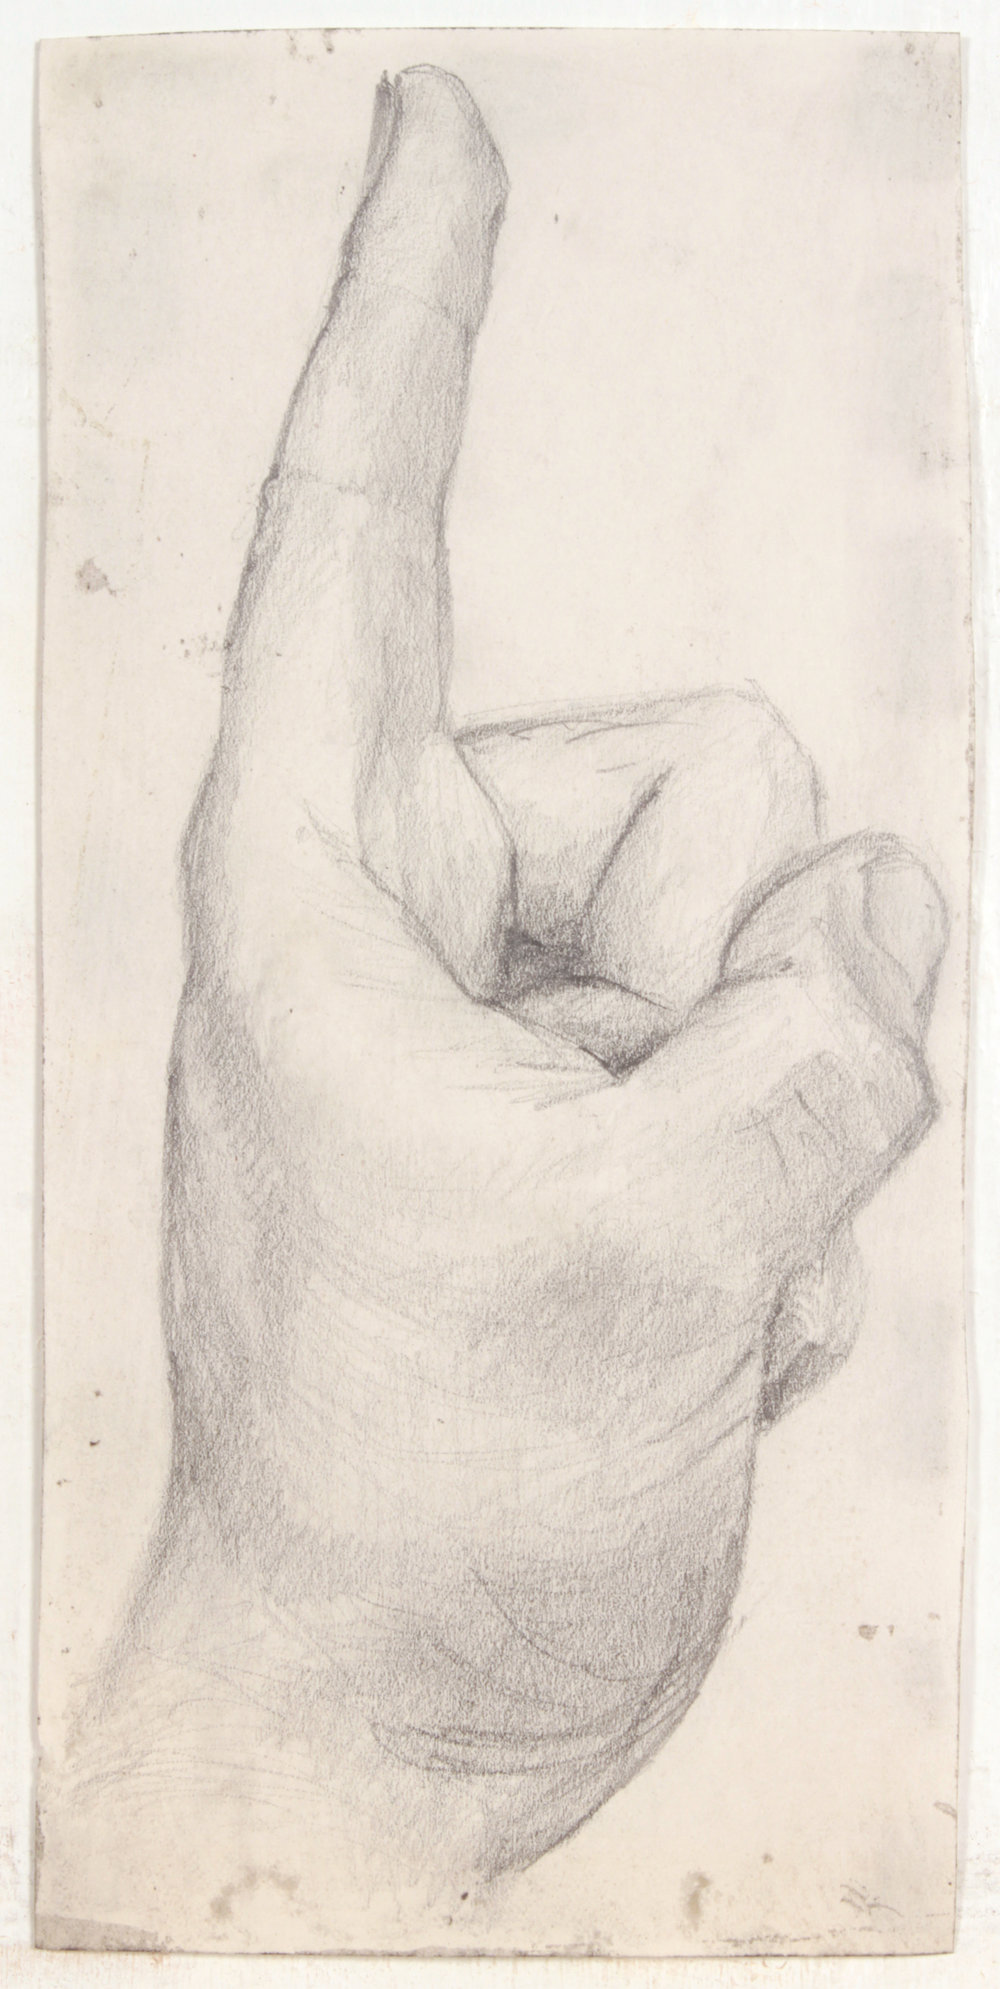 39. 1947-48 c, NT (Hand Study_Indicator Up), Graphite on Paper, 10x4.75, PPS 1489.JPG